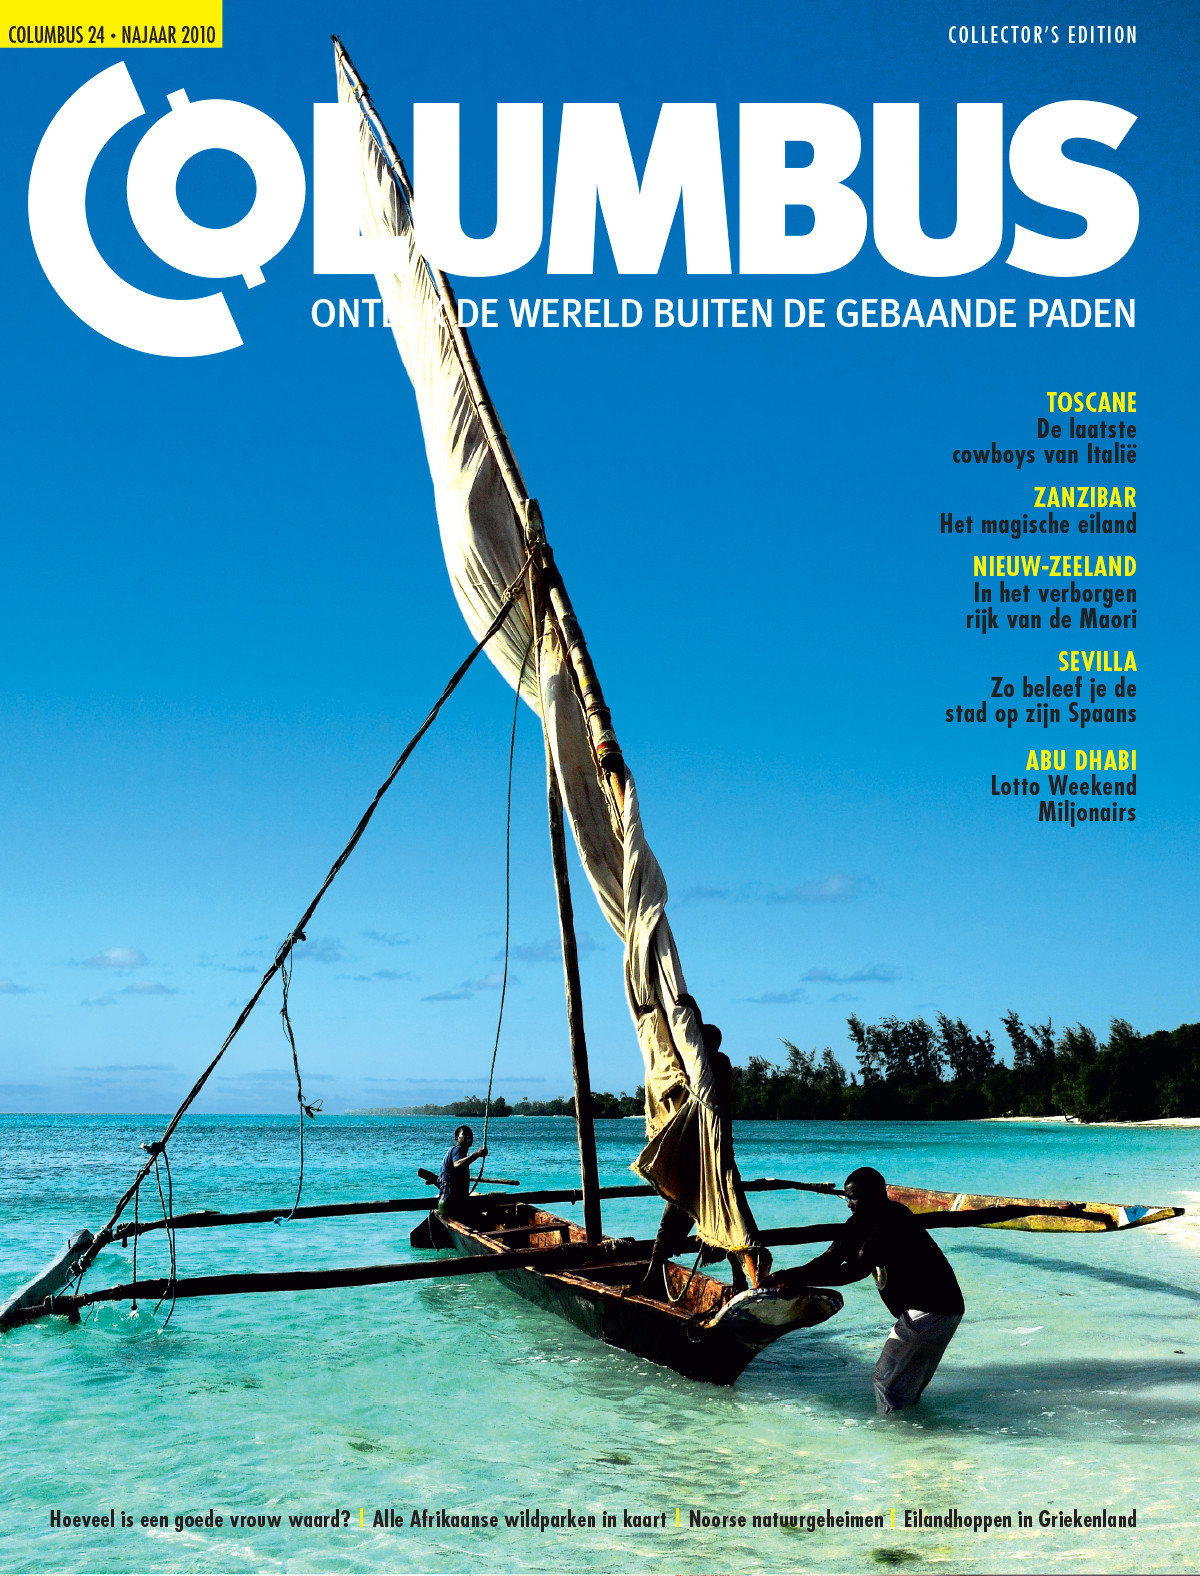 Columbus Travel magazine cover 24